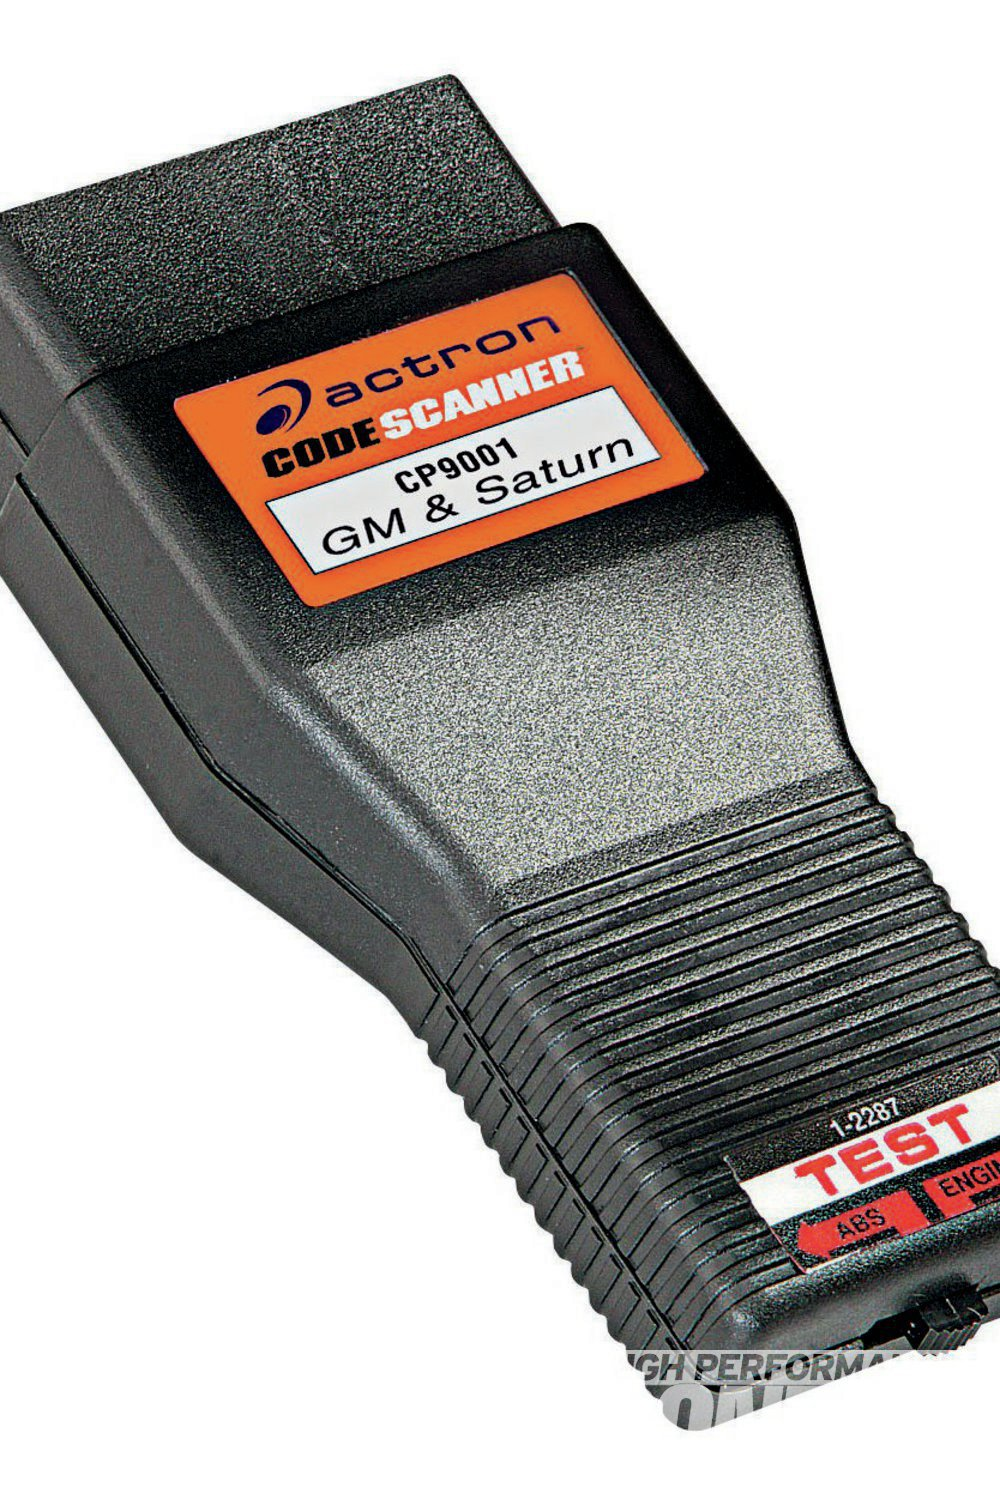 3. Actron's Code Scanner (PN CP9001, MSRP $29.95) makes it easy to read the flash-code sequence GM used prior to implementing OBD-II. Just plug it into your Pontiac's ALDL connector and decode the flashes. (We explain how in the story.)